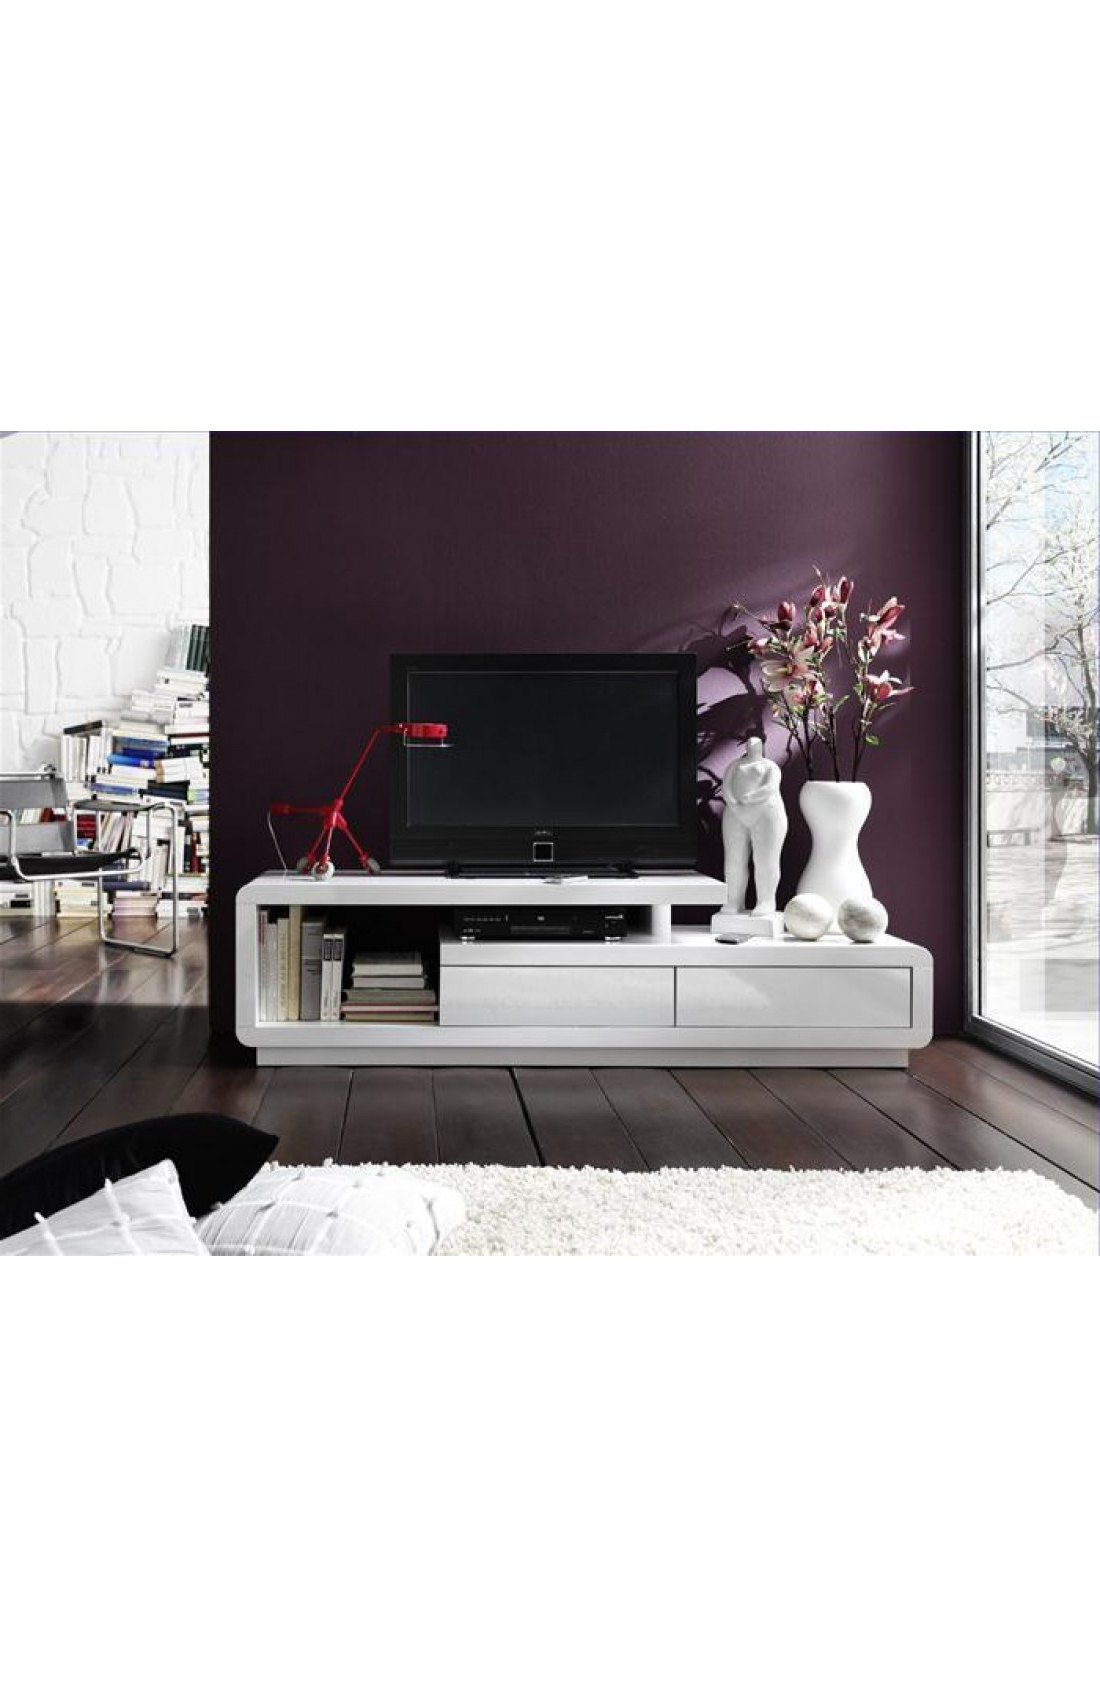 Modanuvo White Gloss Tv Unit Cabinet With Drawers With Regard To Best And Newest High Gloss White Tv Stands (View 6 of 20)